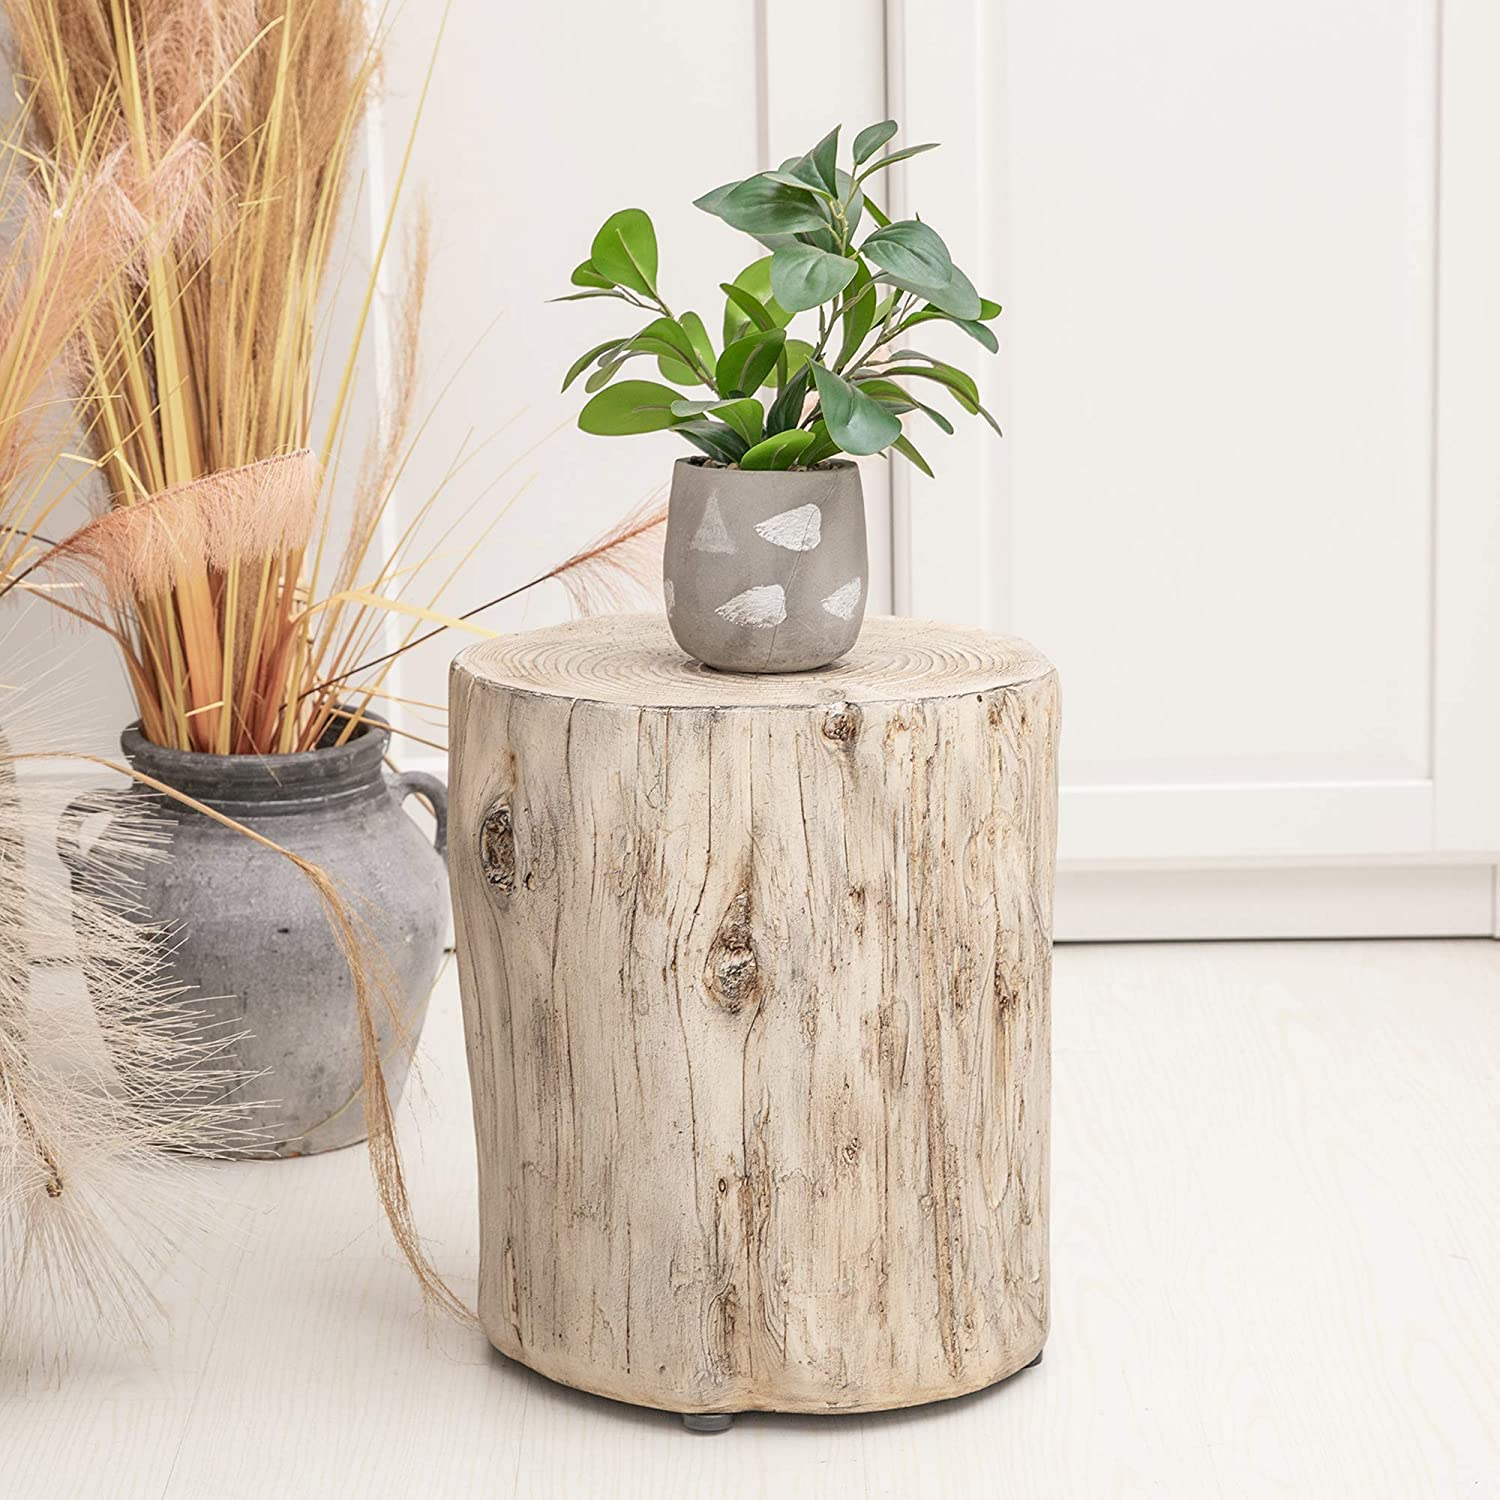 Ball & Cast Faux Wood Stump Accent Table, Grey white from Amazon